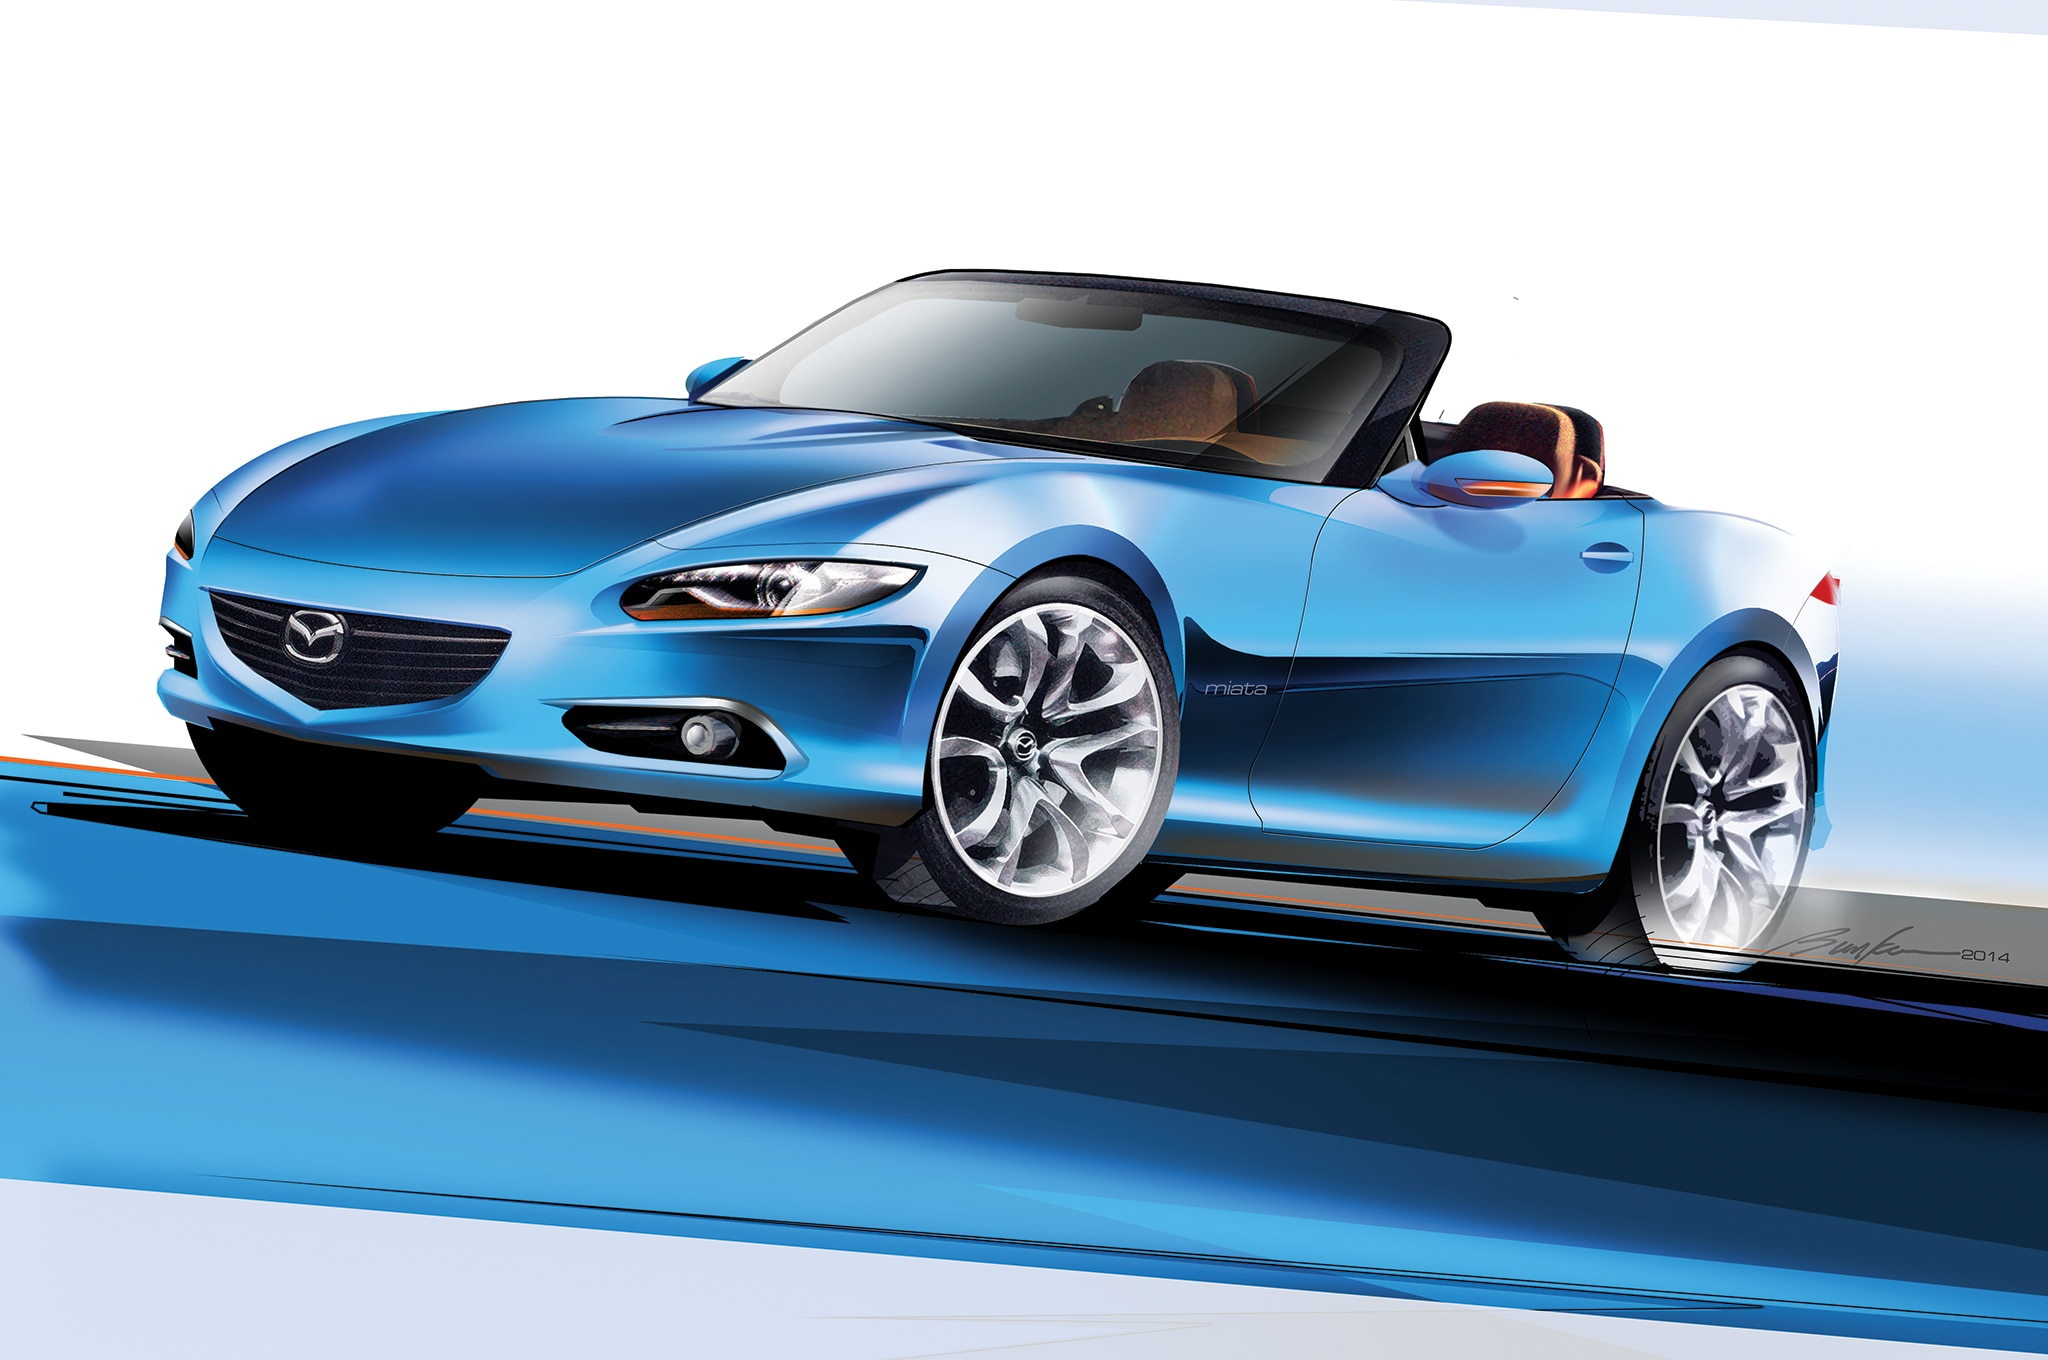 2016 Mazda Mx 5 Miata Sketch Front Three Quarter